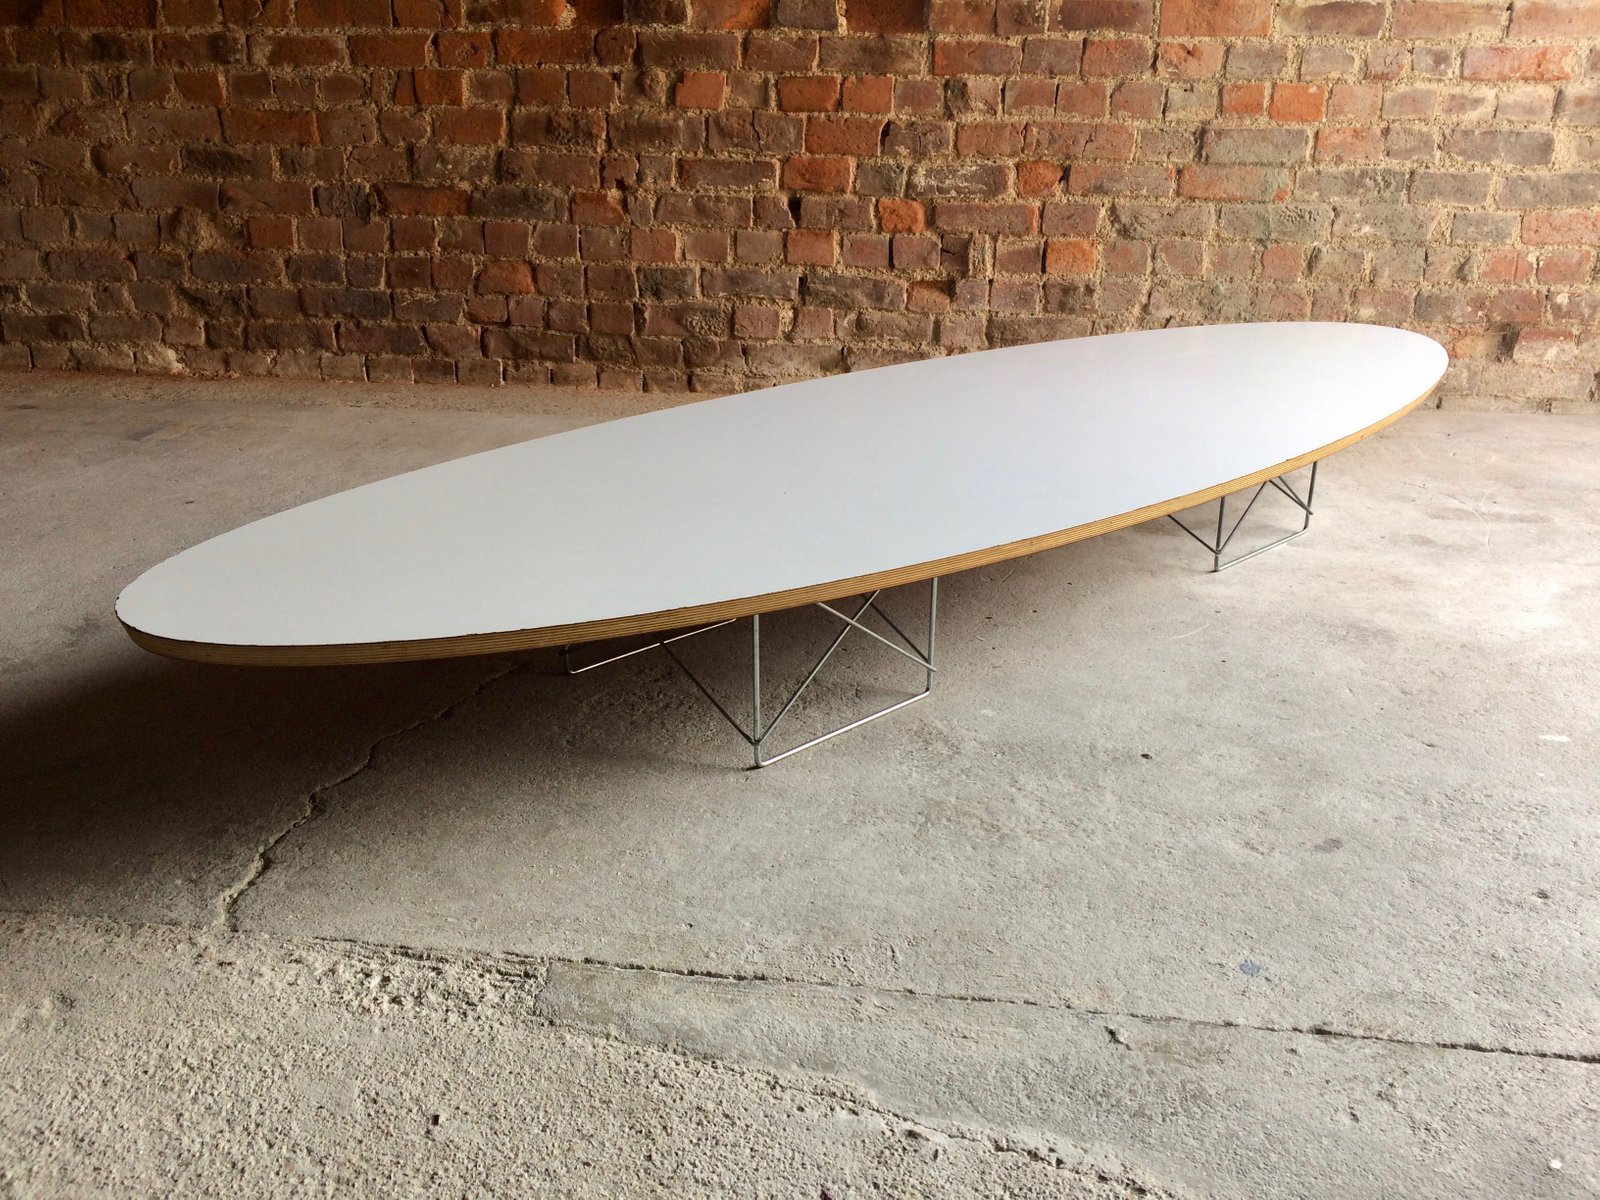 Vintage Elliptical Coffee Table by Charles & Ray Eames for Herman